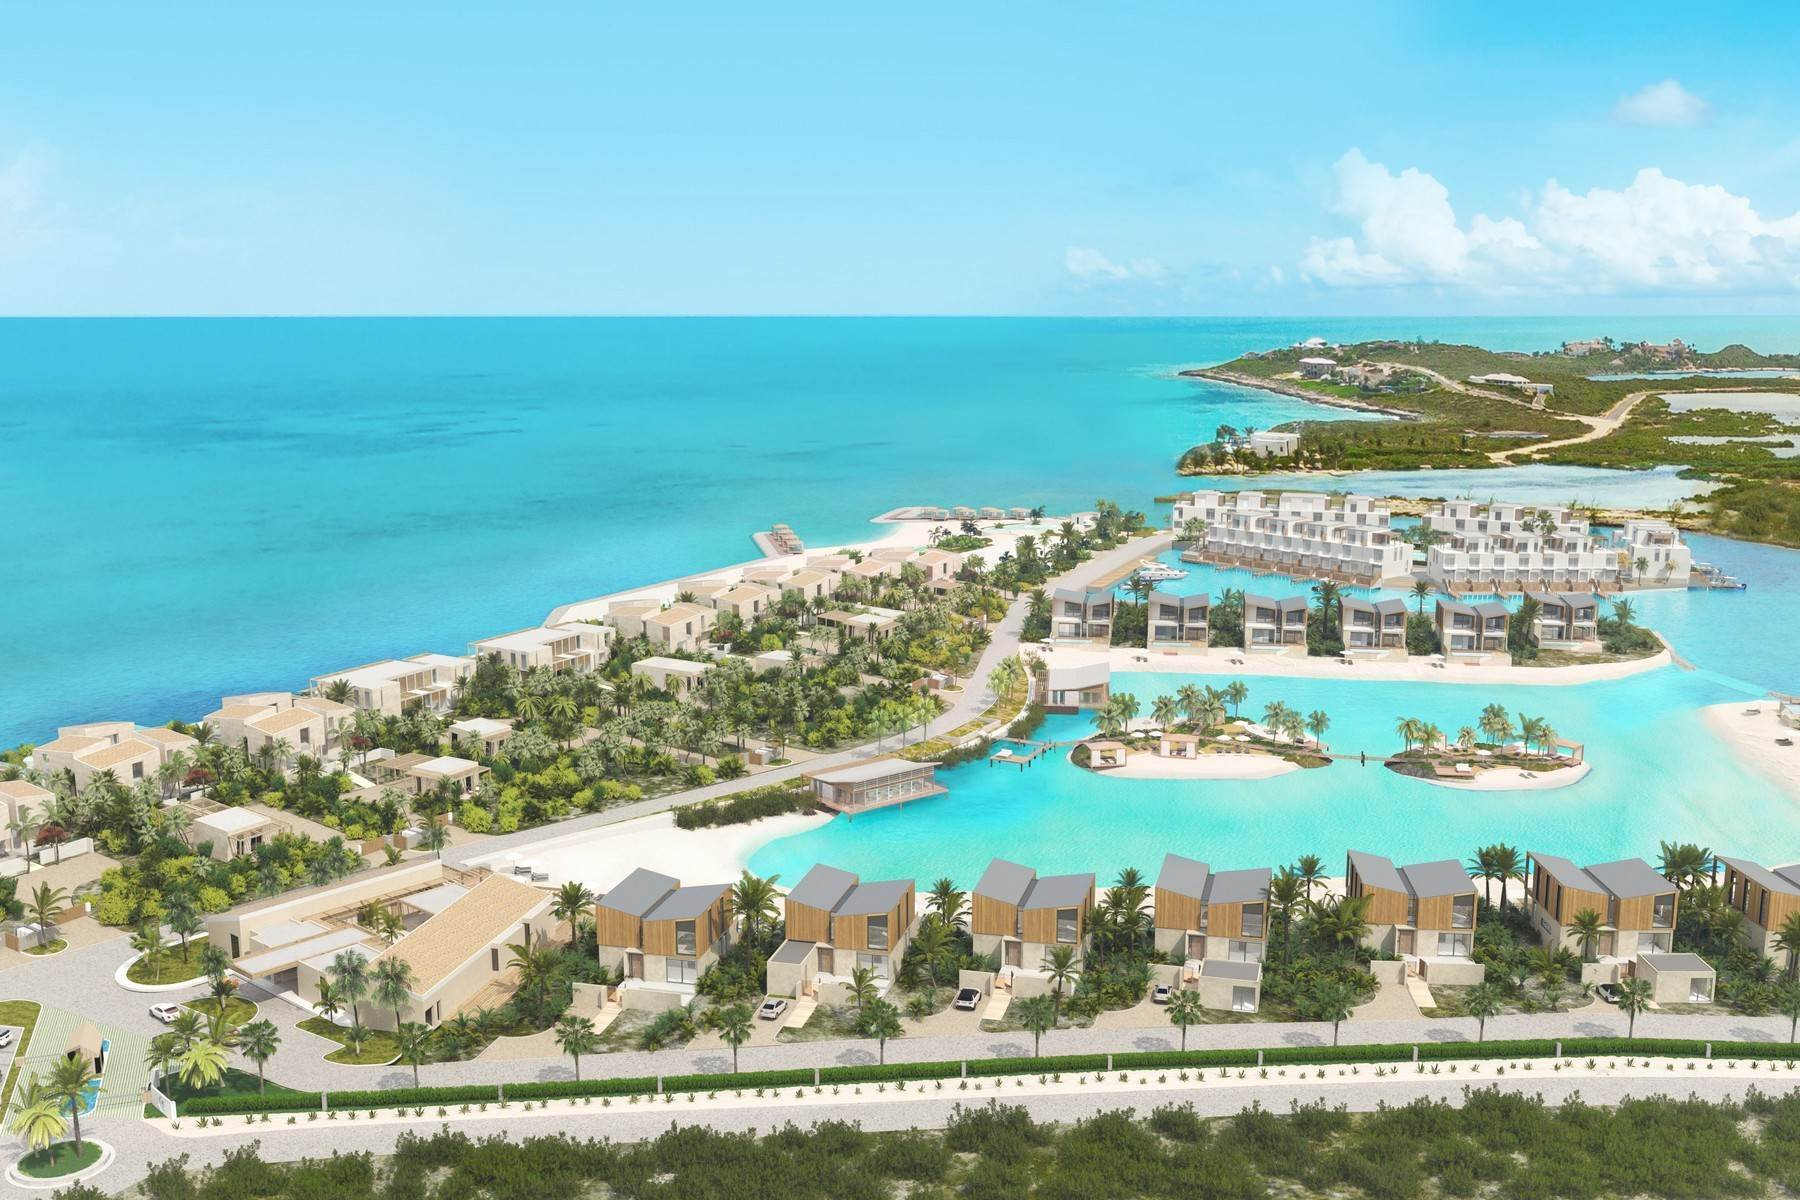 9. Single Family Homes for Sale at SOUTH BANK - THE OCEAN ESTATE I - BANKS VILLA 7 South Bank, Long Bay, Providenciales Turks And Caicos Islands